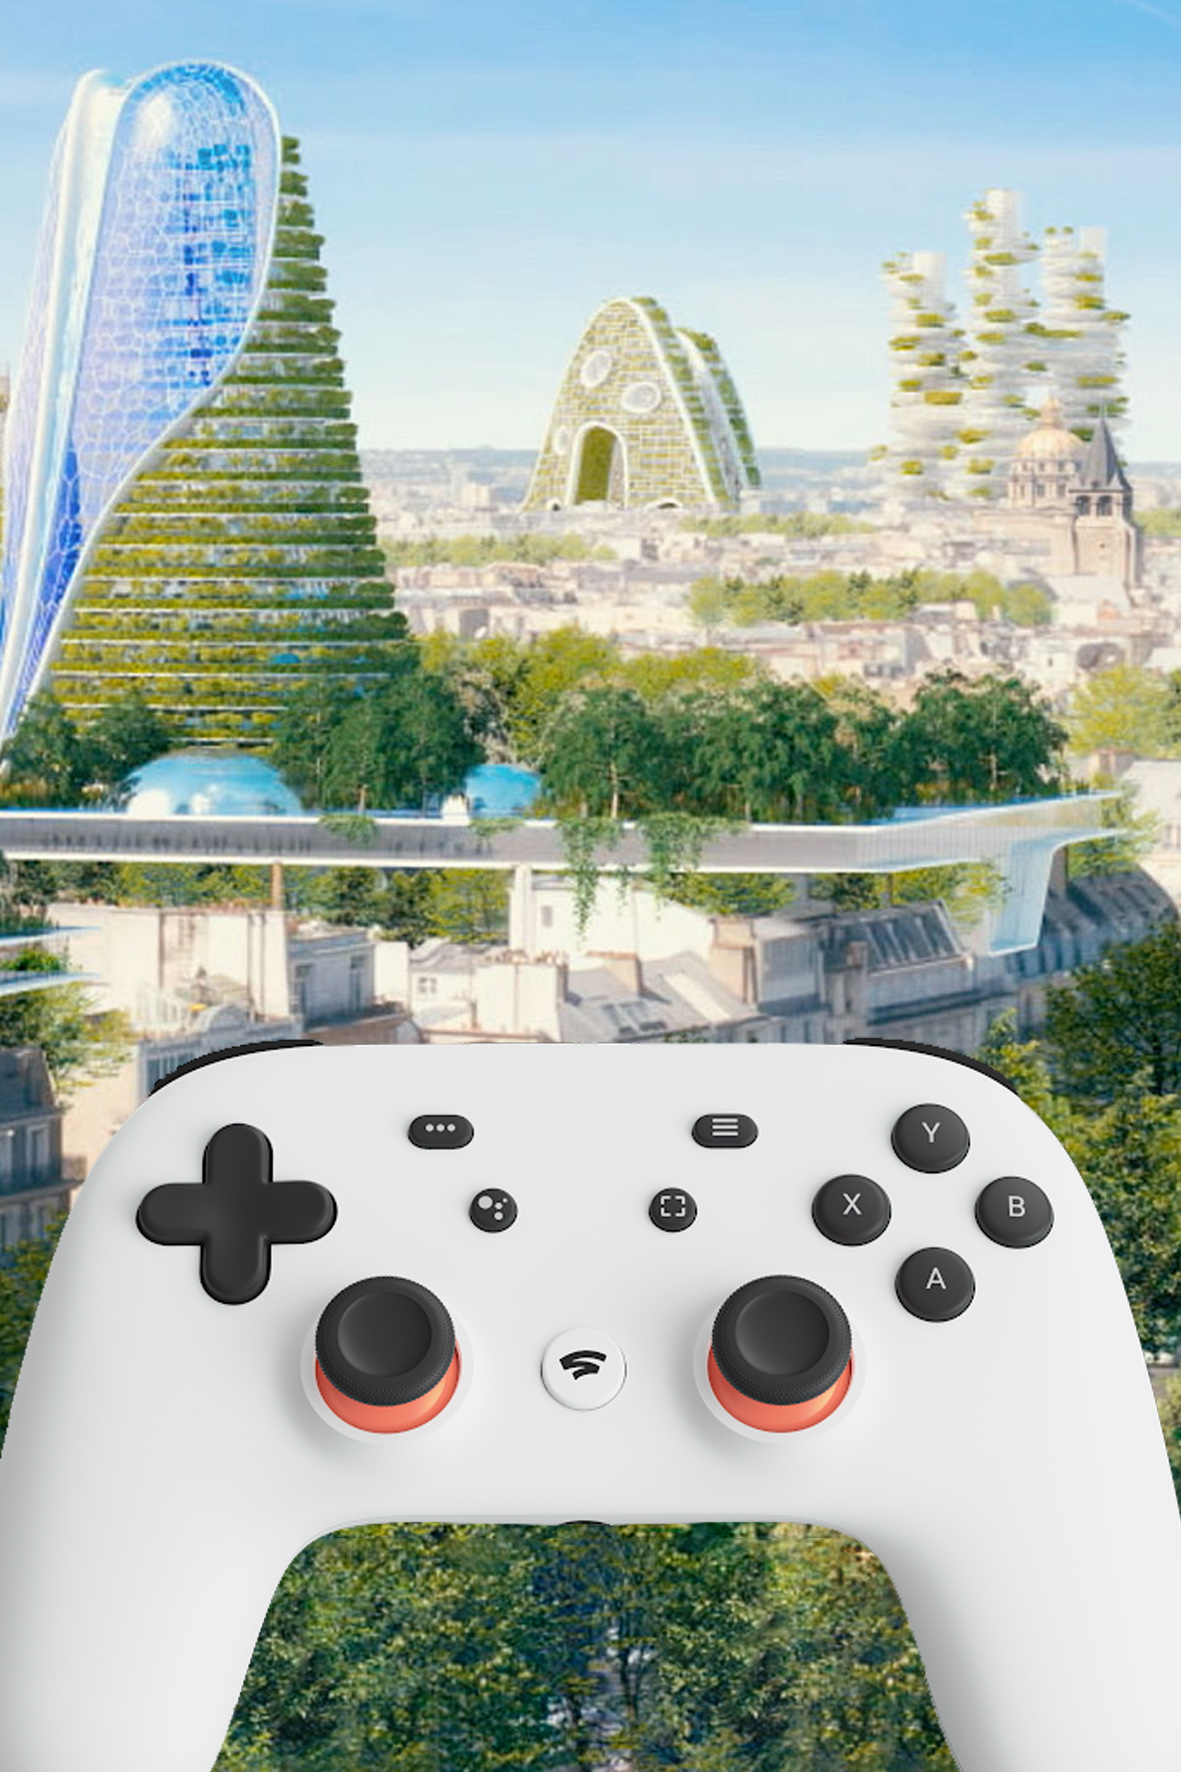 Towards an Ethical Gaming Console